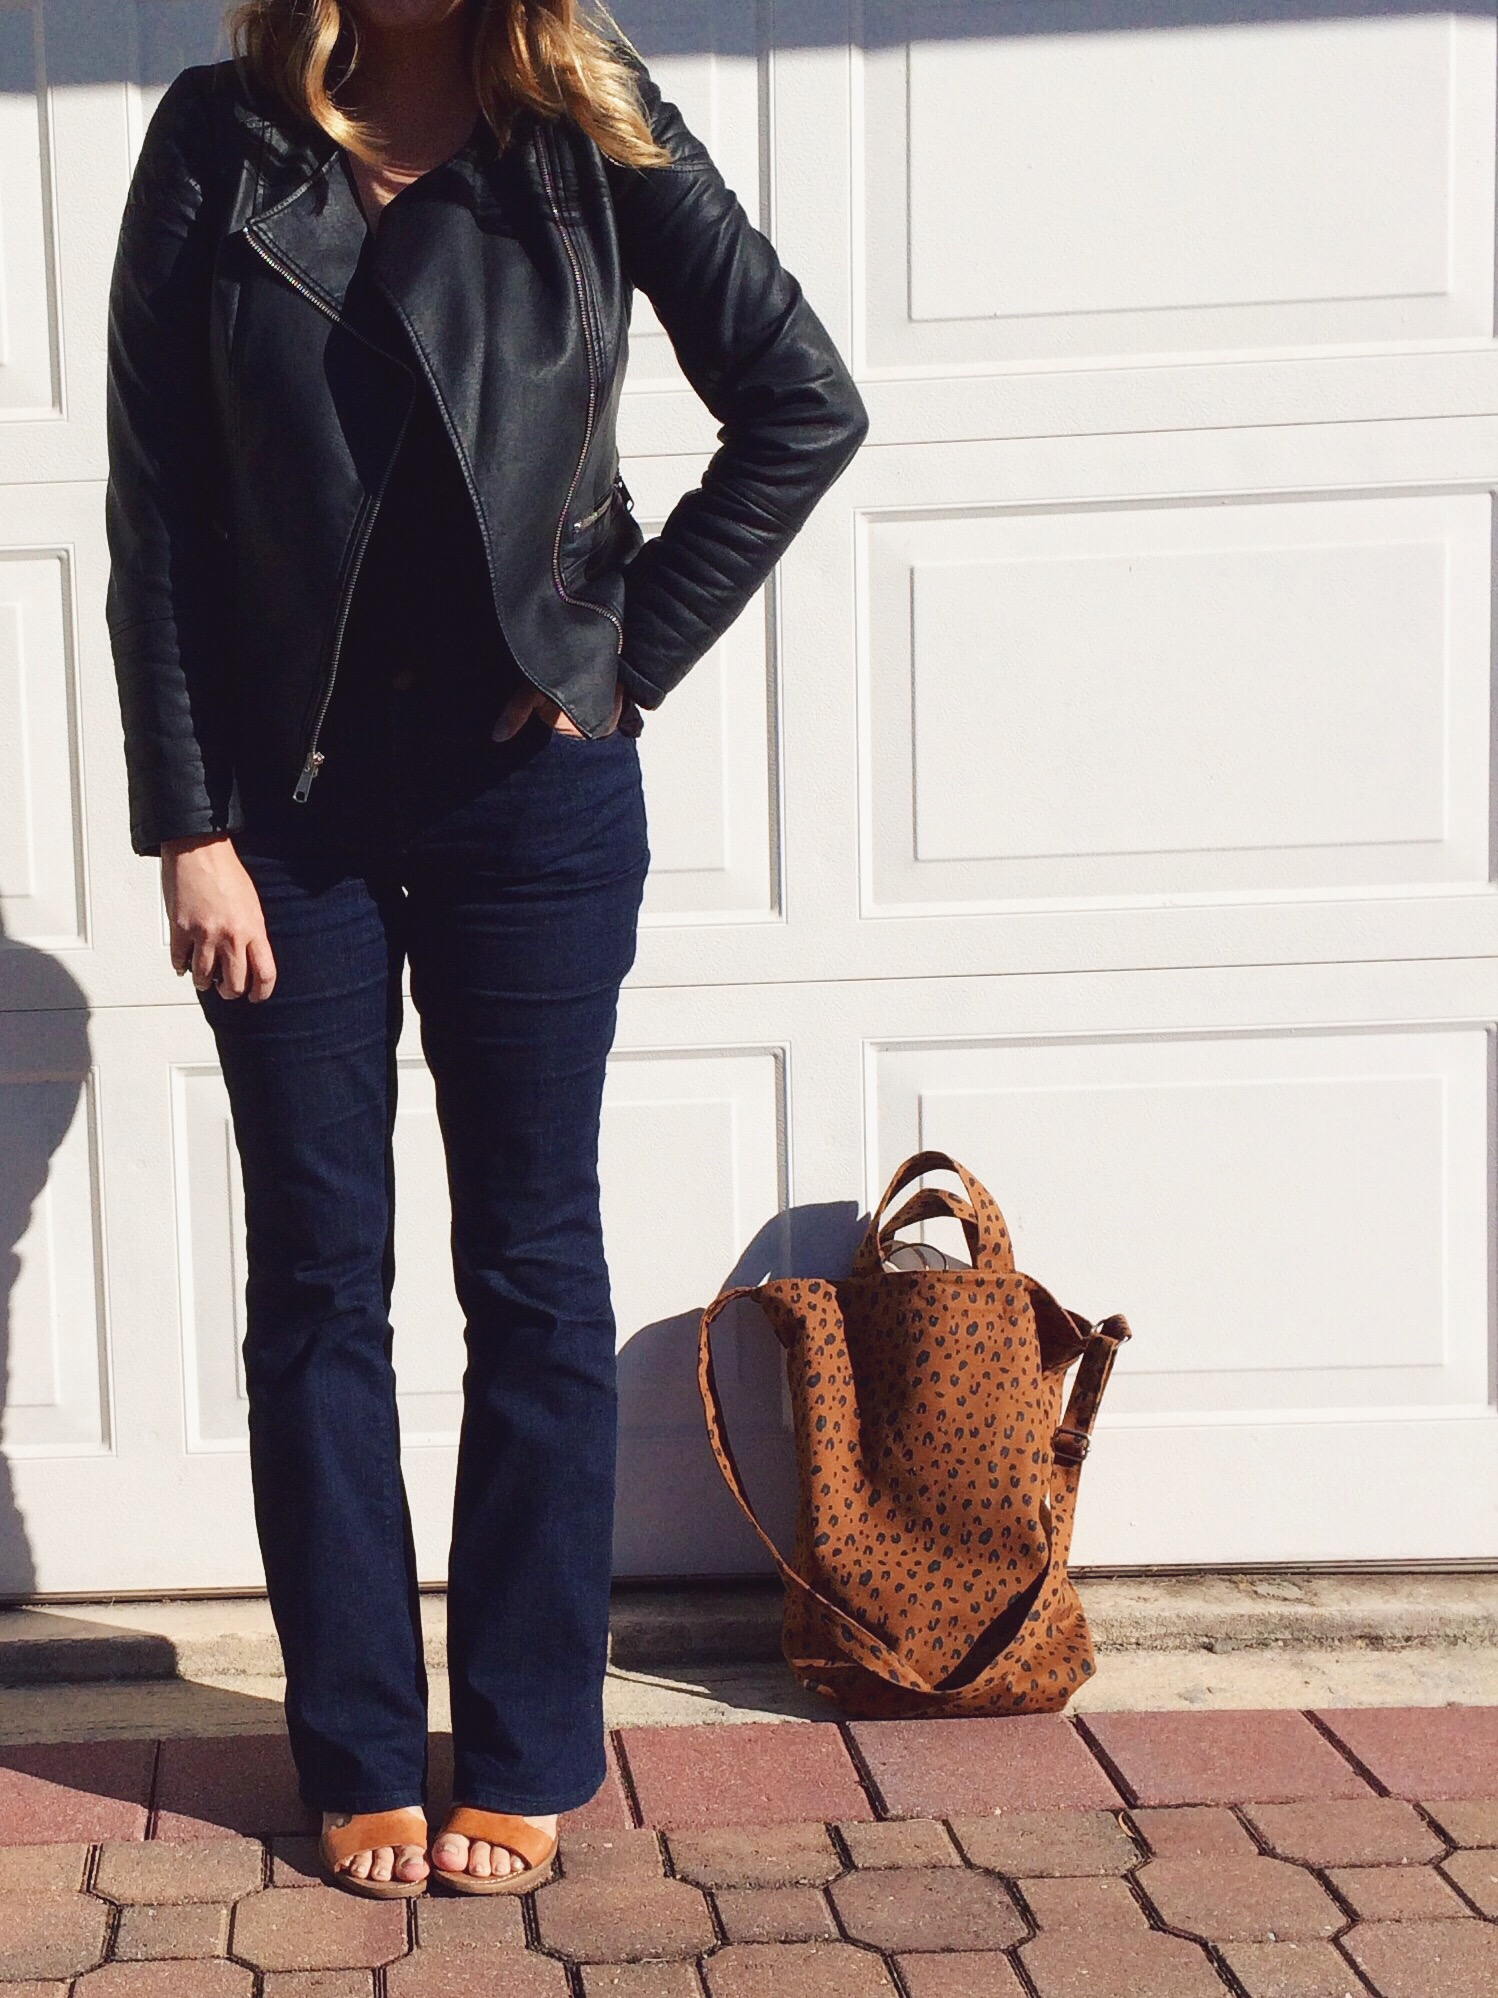 OOTD: Pleather jacket with LOFT flare jeans. keiralennox.com